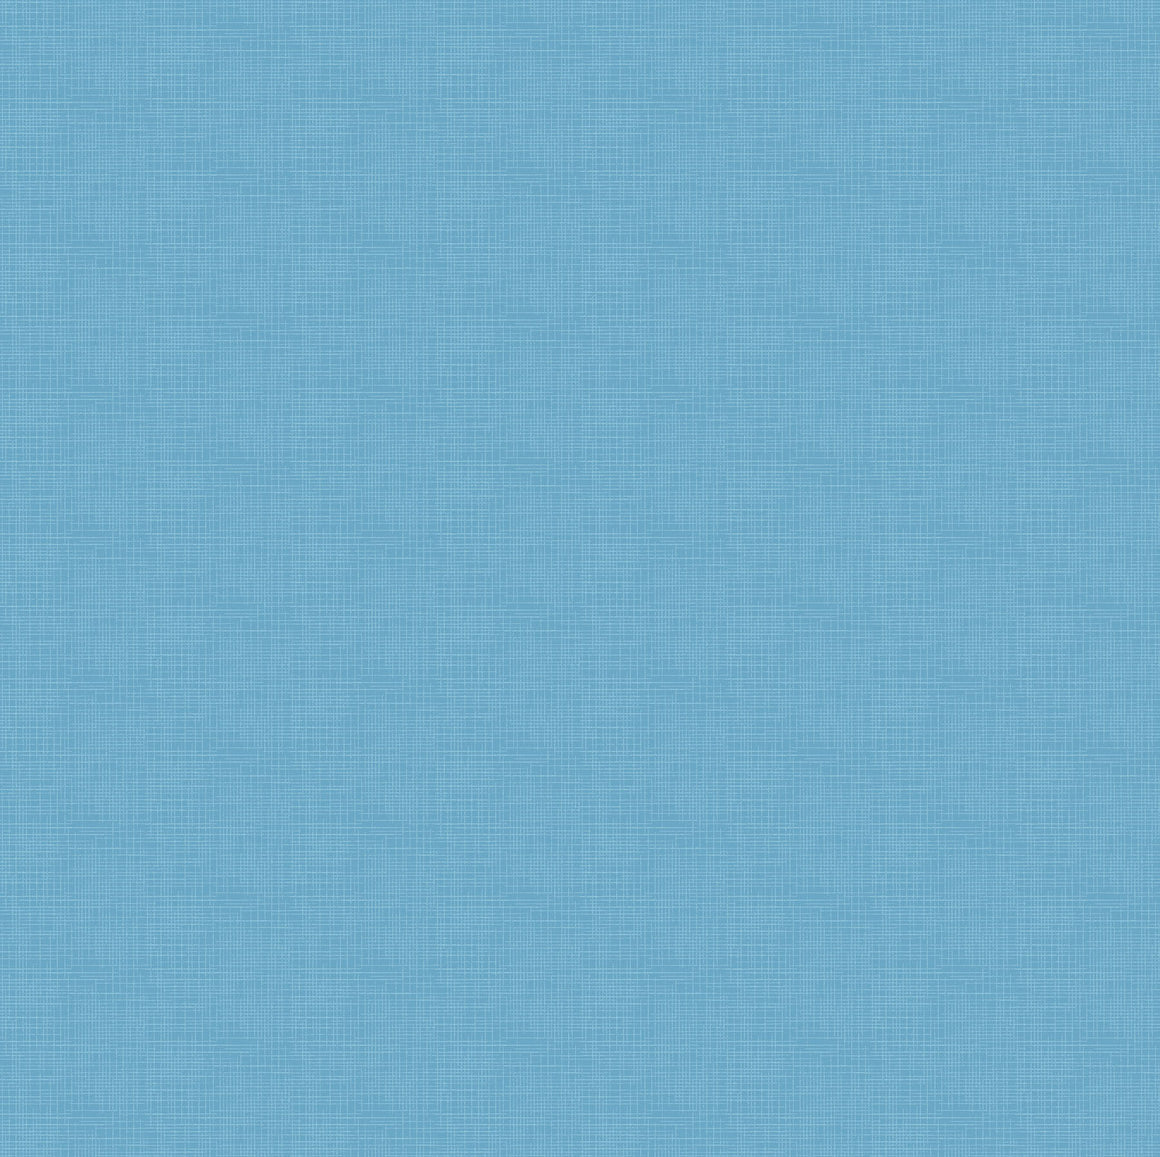 Medium Blue - Dublin Texture - 9040-43, Designer Fabric, Northcott, [variant_title] - Mad About Patchwork